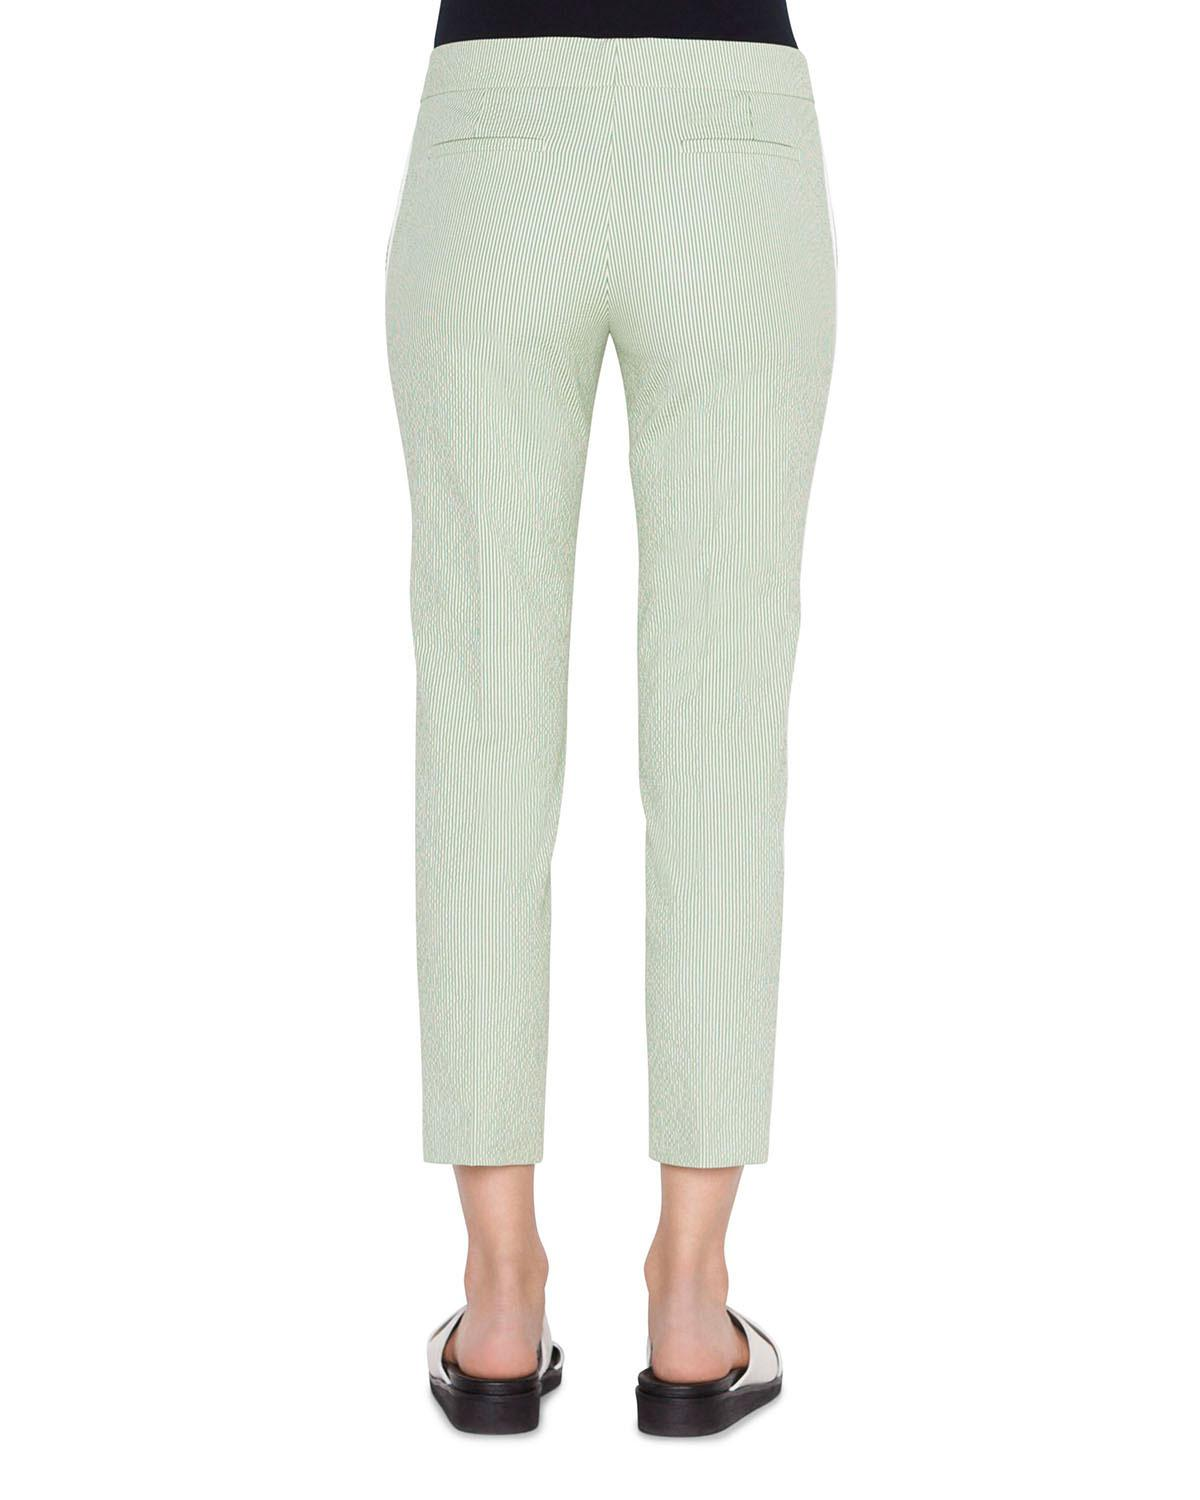 82dff27501a4 Lyst - Akris Punto Frankie Cotton Seersucker Pants in Green